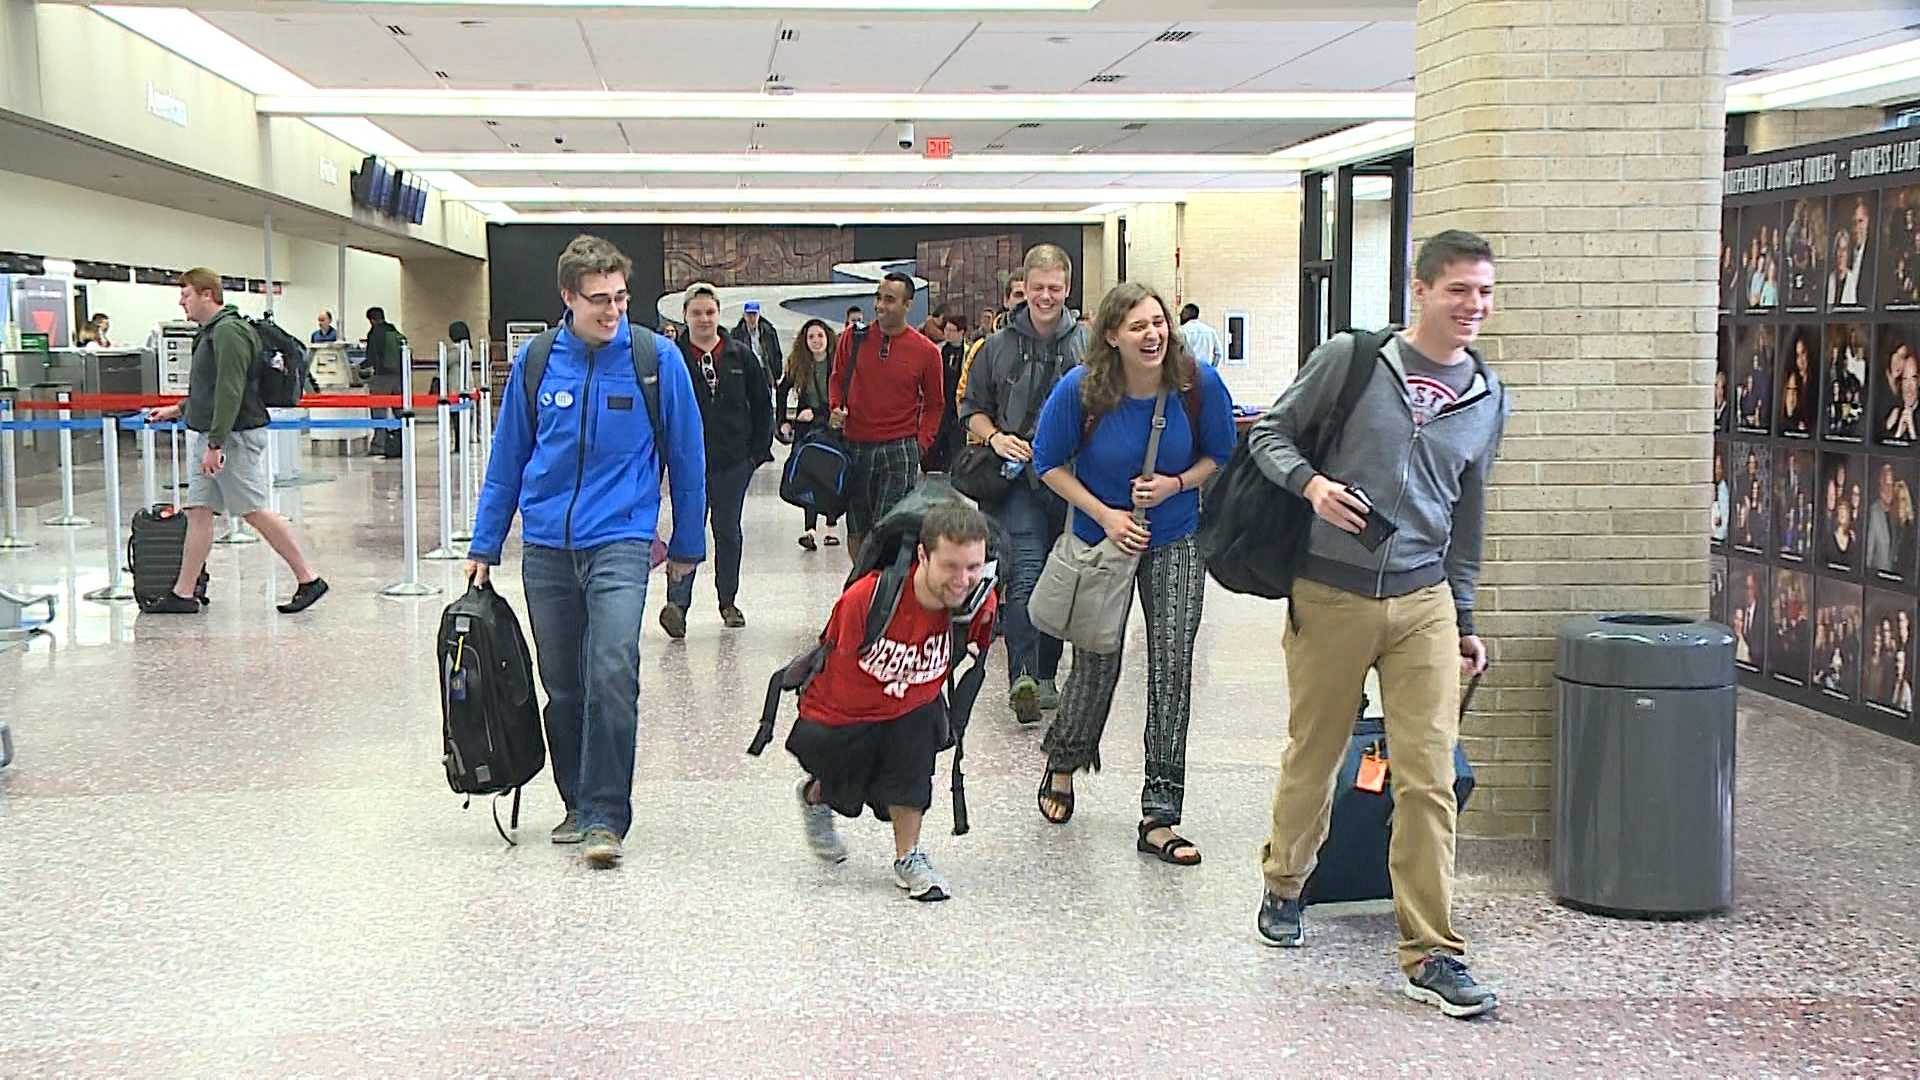 A group of business and engineering students from the University of Nebraska-Lincoln are using their spring break to help Ugandan women a half a world away. The students, who flew out of Omaha's Eppley Airfield, will spend a week to help support a business aimed at empowering women and cleaning the environment in Africa.